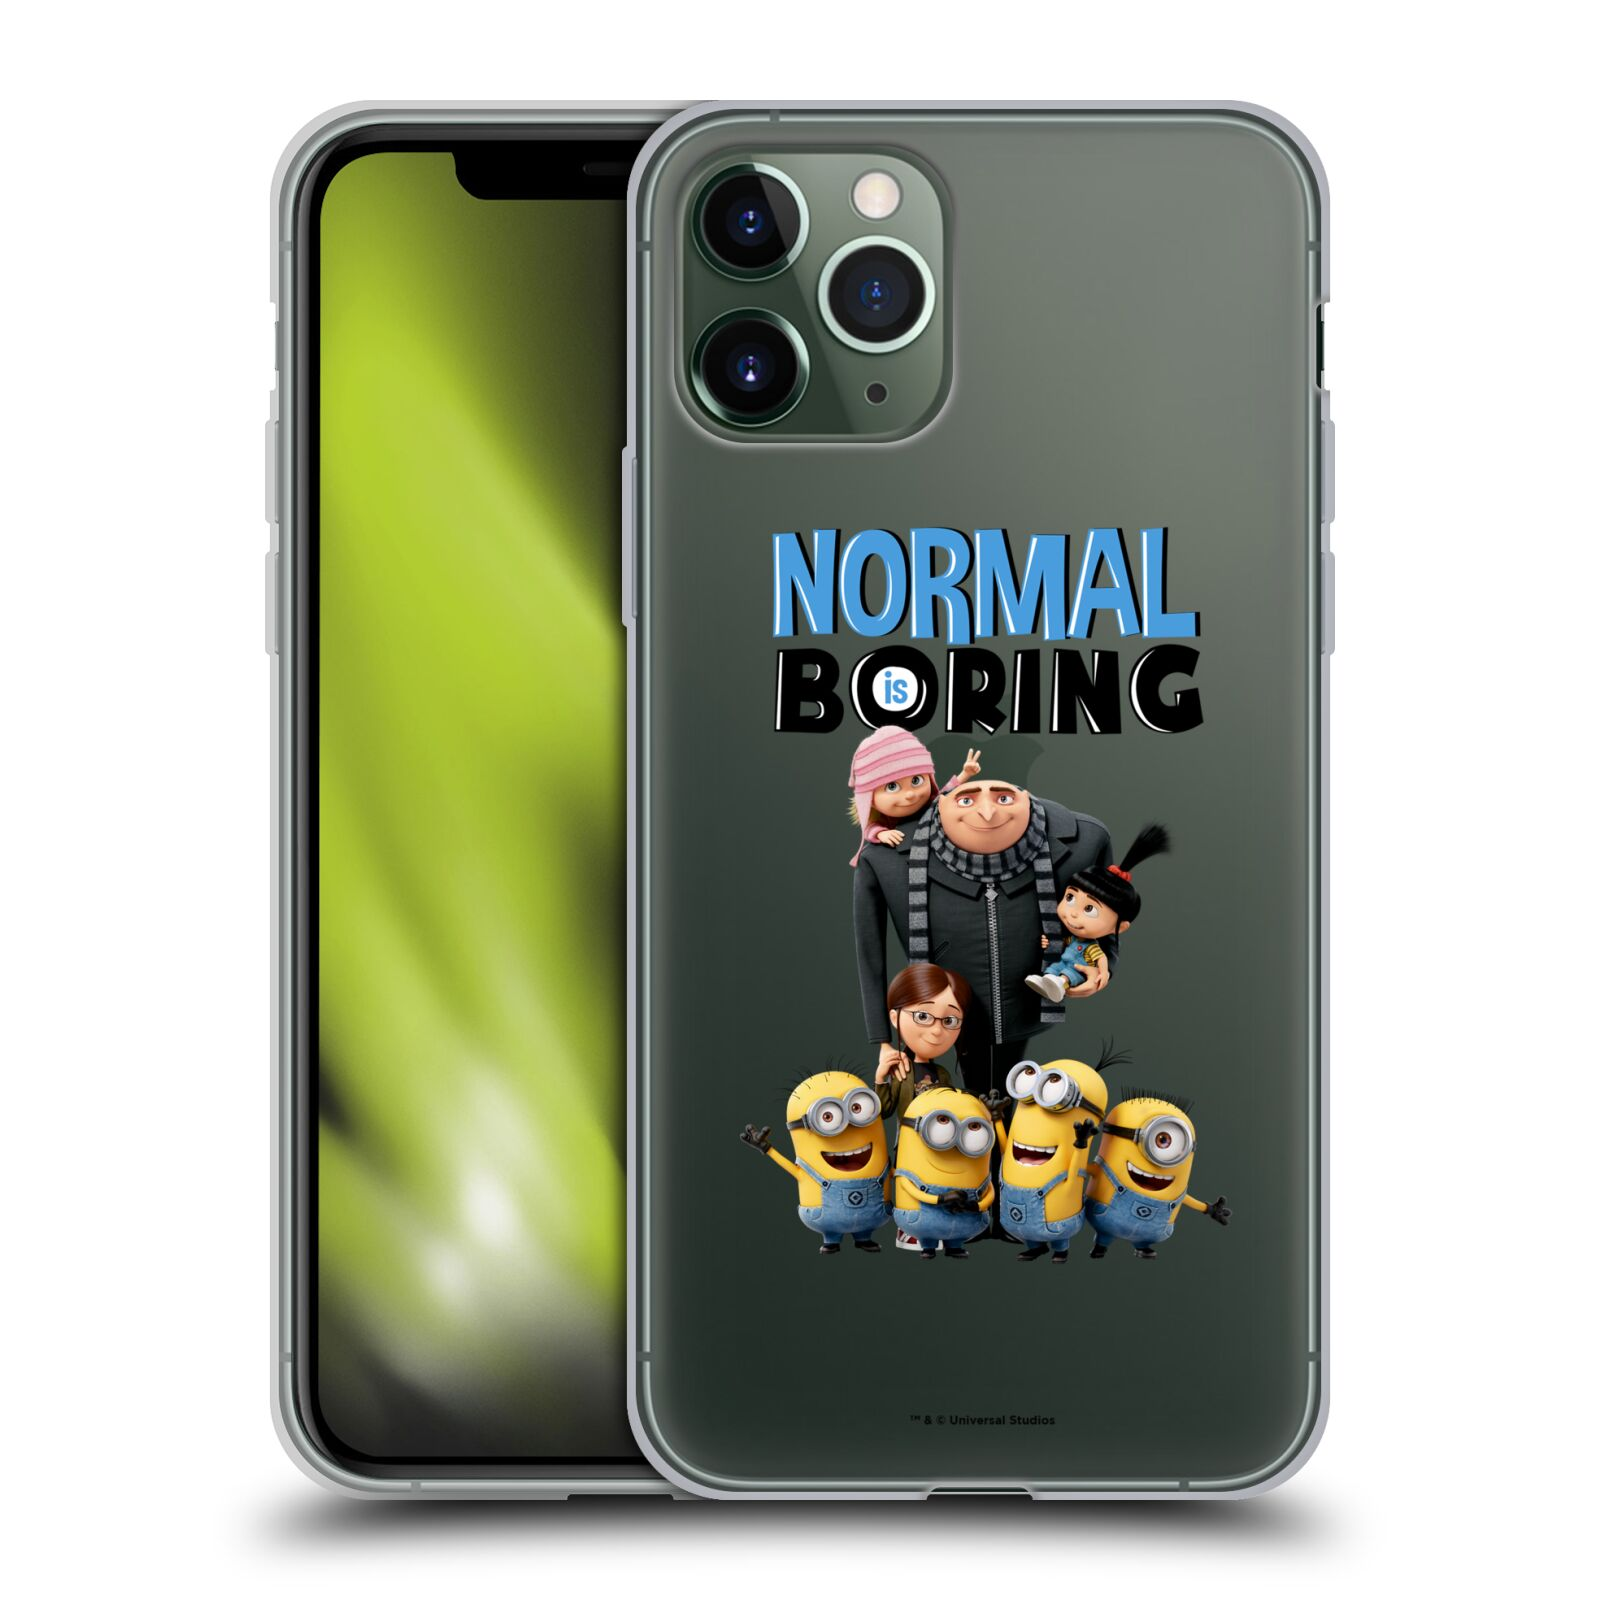 kryt swarovski iphone 6 | Silikonové pouzdro na mobil Apple iPhone 11 Pro - Head Case - Normal is boring z filmu Já, padouch - Despicable Me